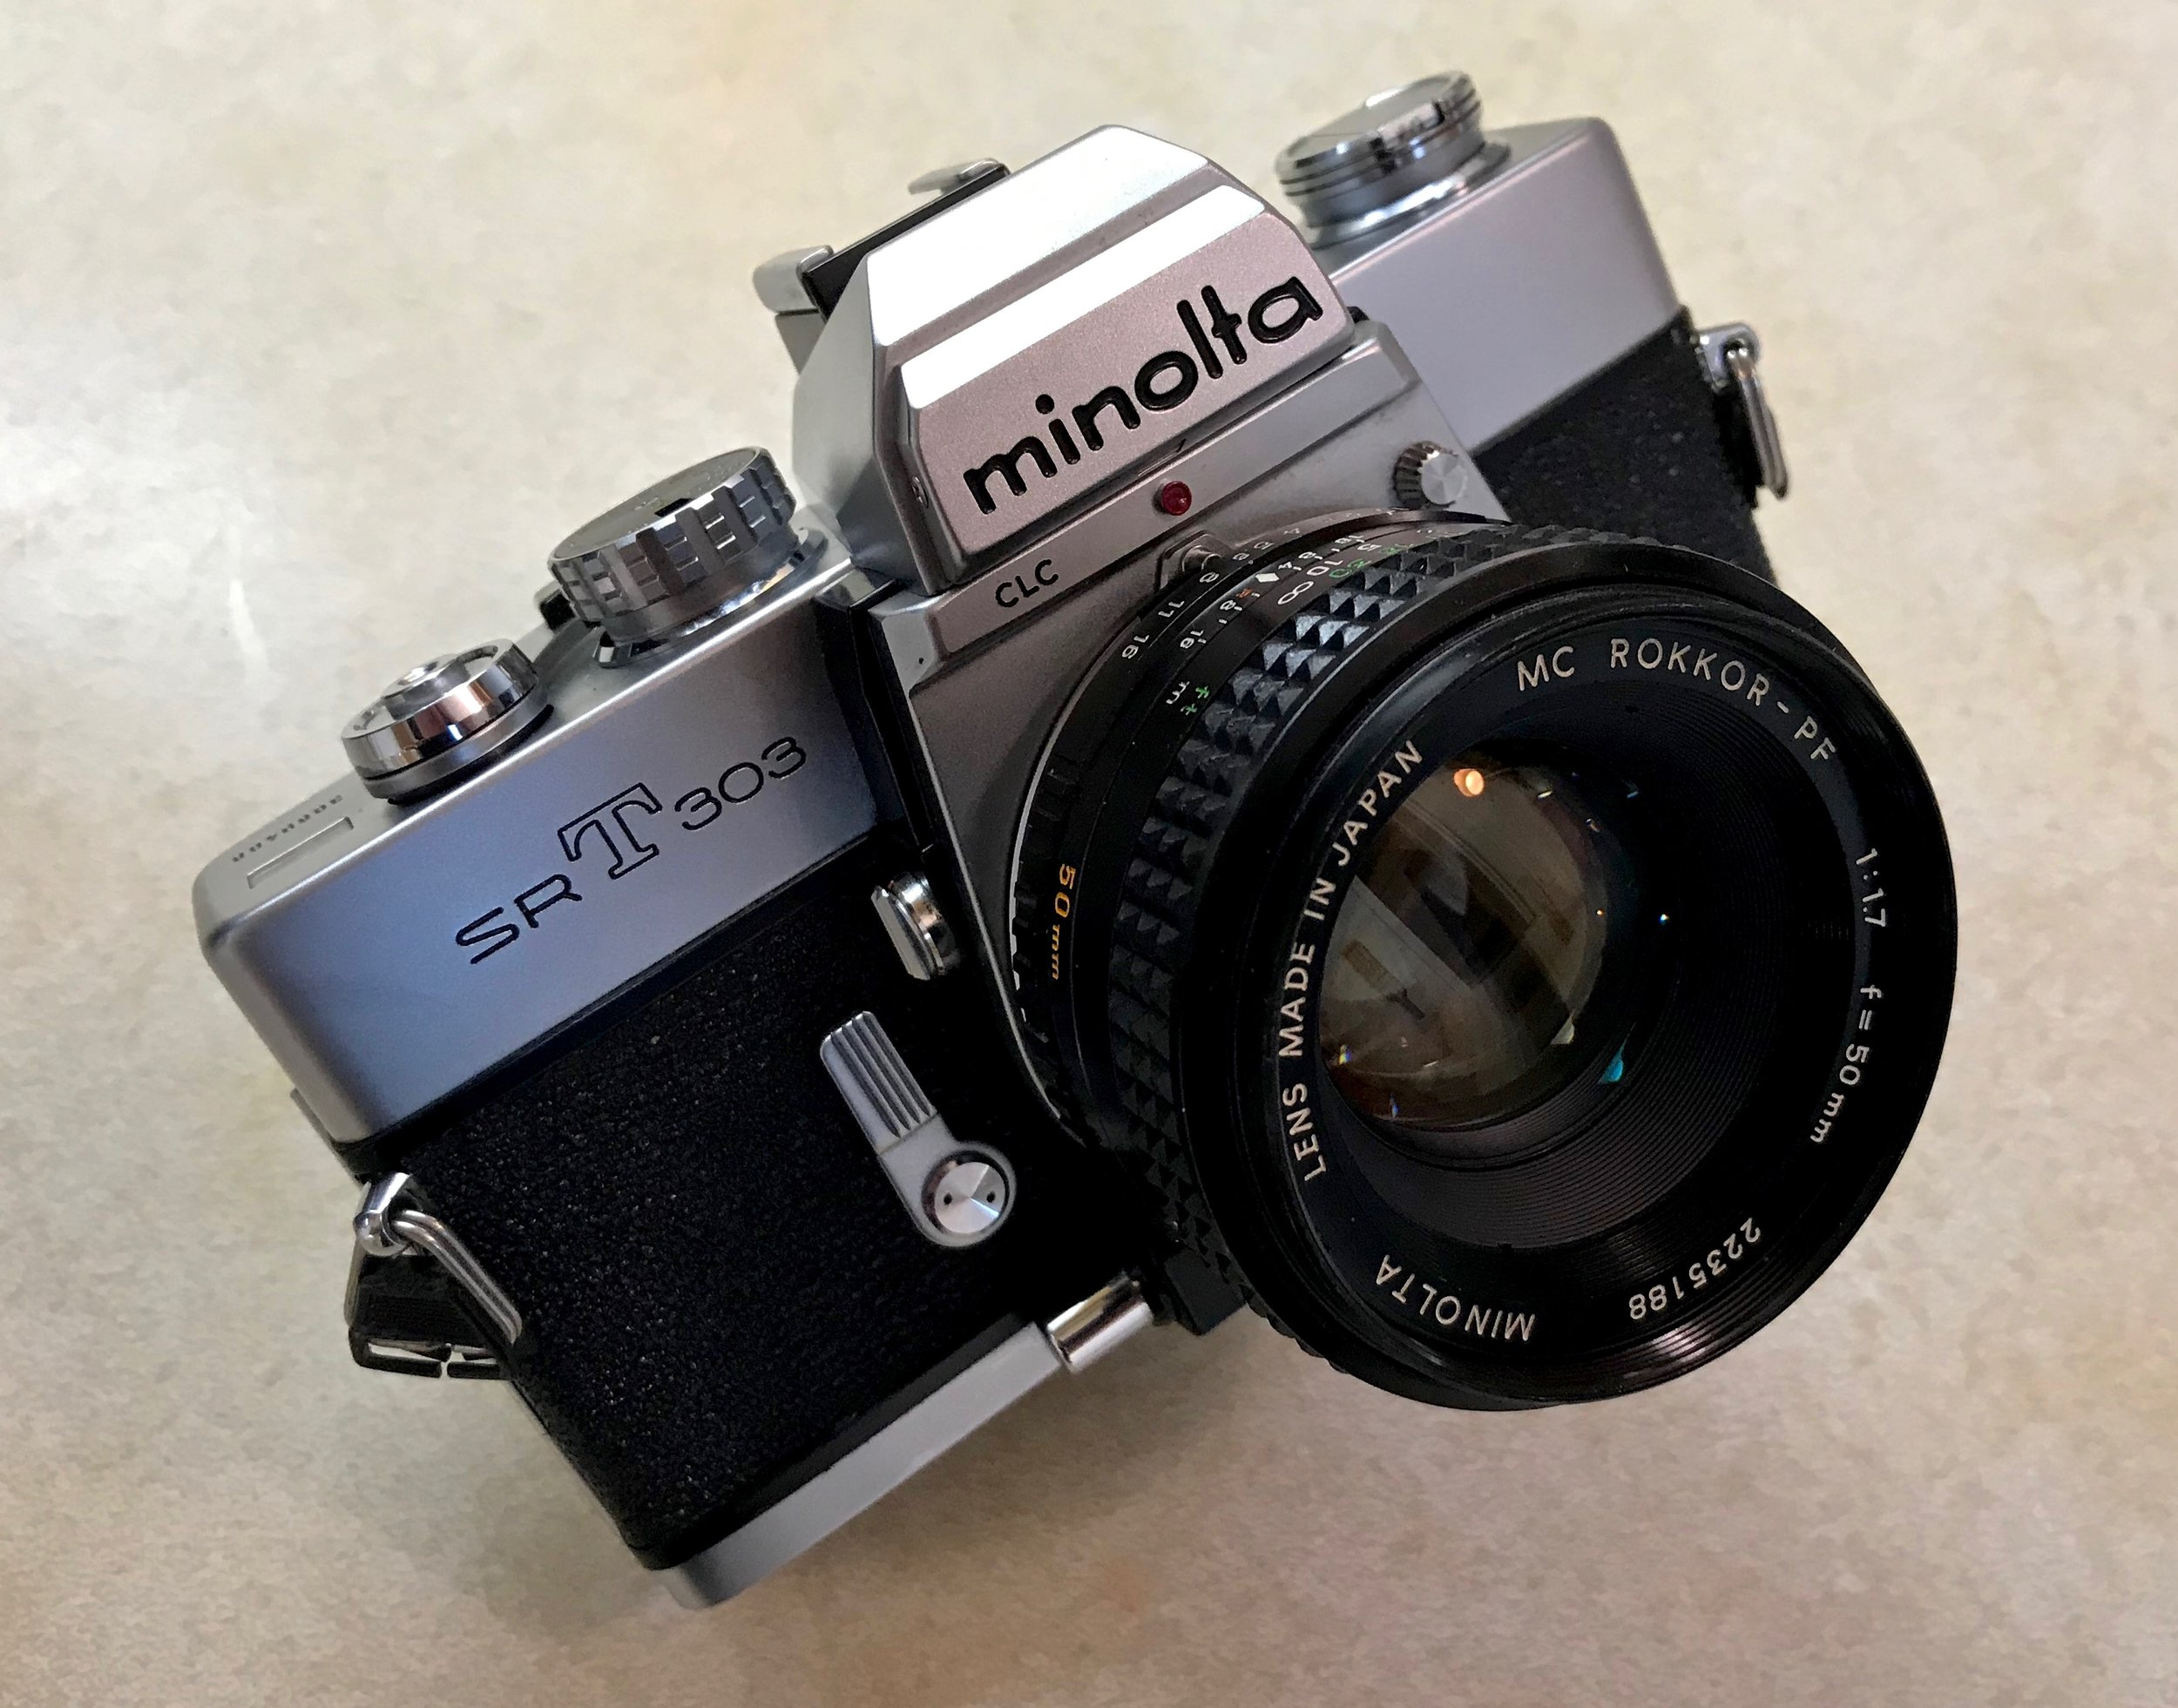 Minolta SRT303 - All of the SRT models are simple mechanical cameras that mount very nice and affordable Rokkor lenses.